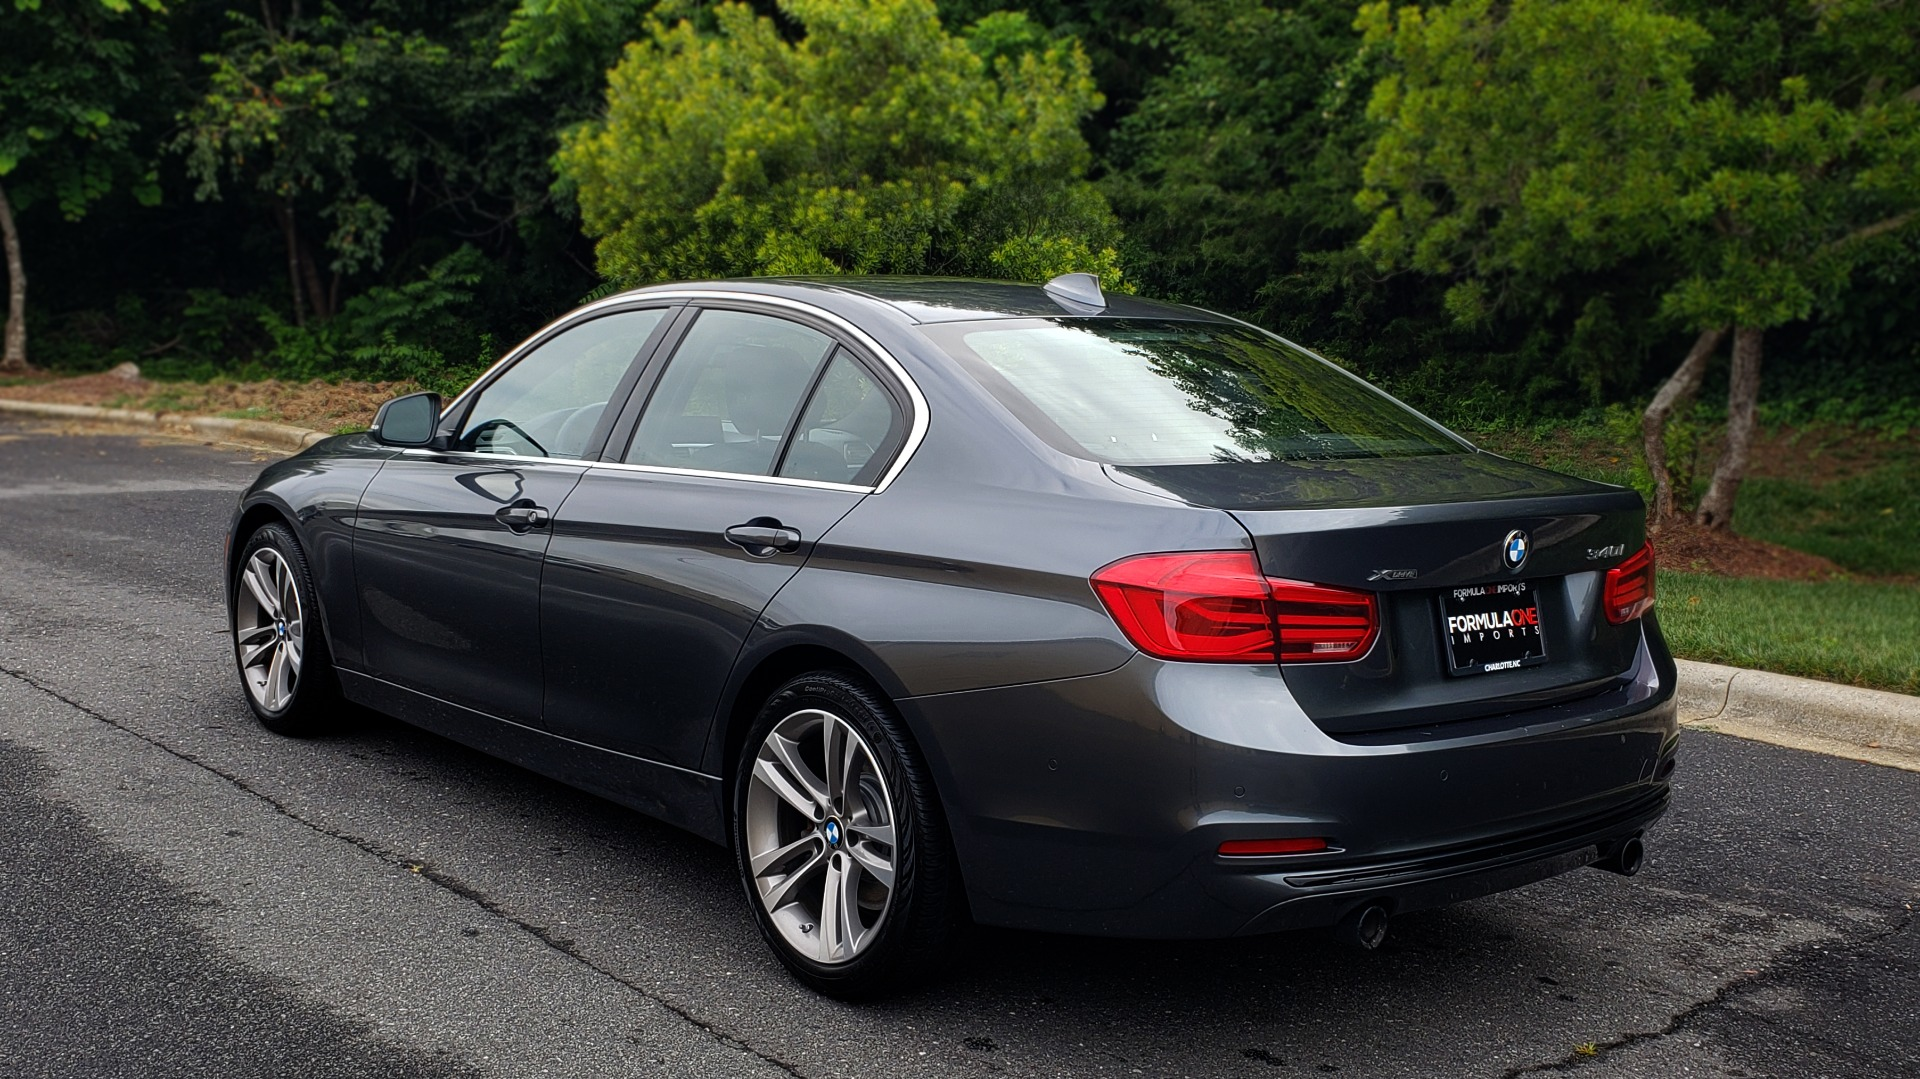 Used 2017 BMW 3 SERIES 340I XDRIVE SPORT / NAV / DRVR ASST PLUS / PARK ASST / CLD WTHR for sale $28,995 at Formula Imports in Charlotte NC 28227 3